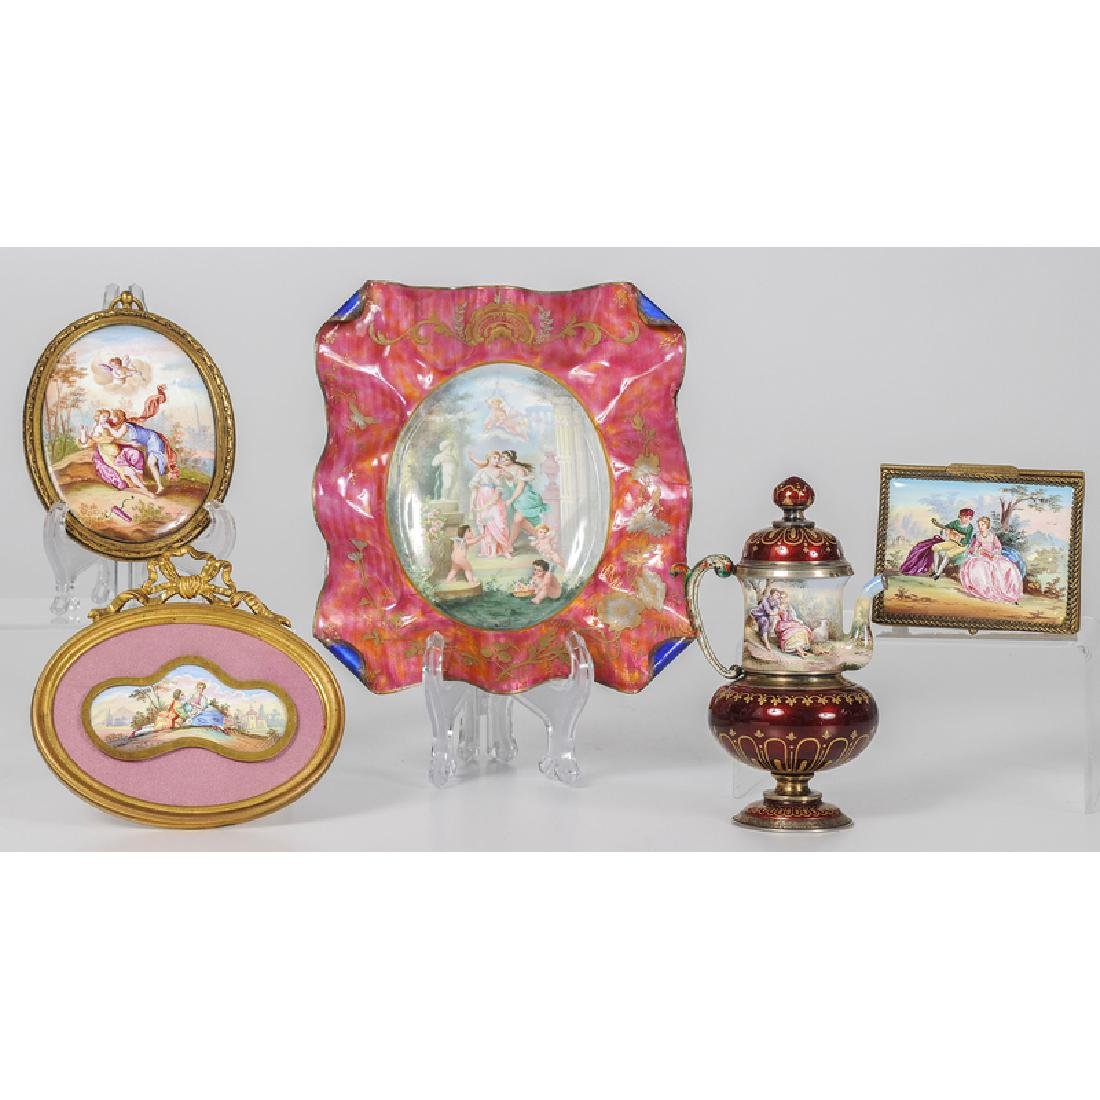 Austrian Accessories Decorated with Enamel Court Scenes